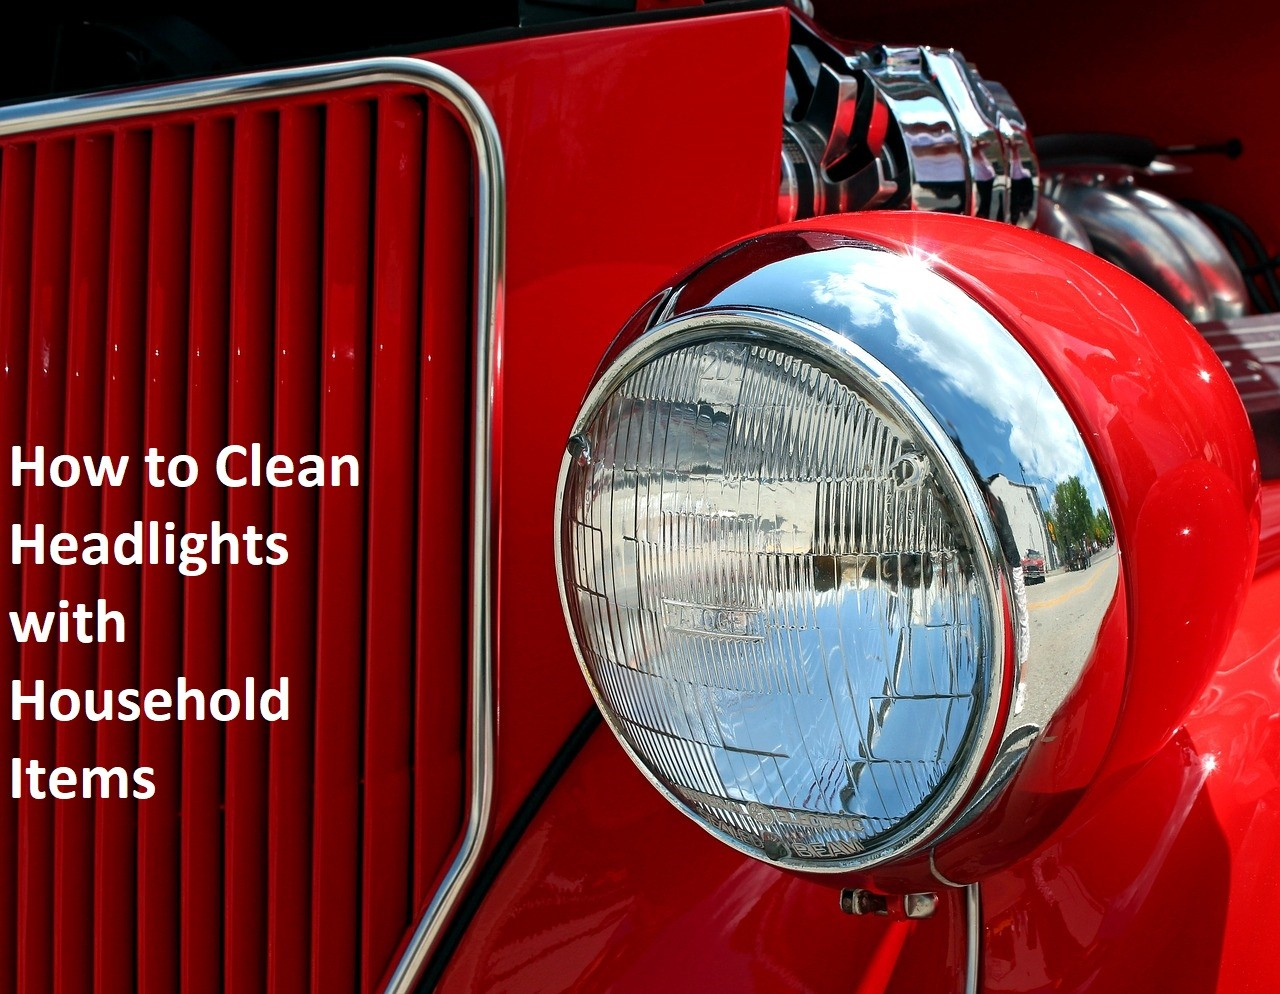 How To Clean Headlights With Household Items